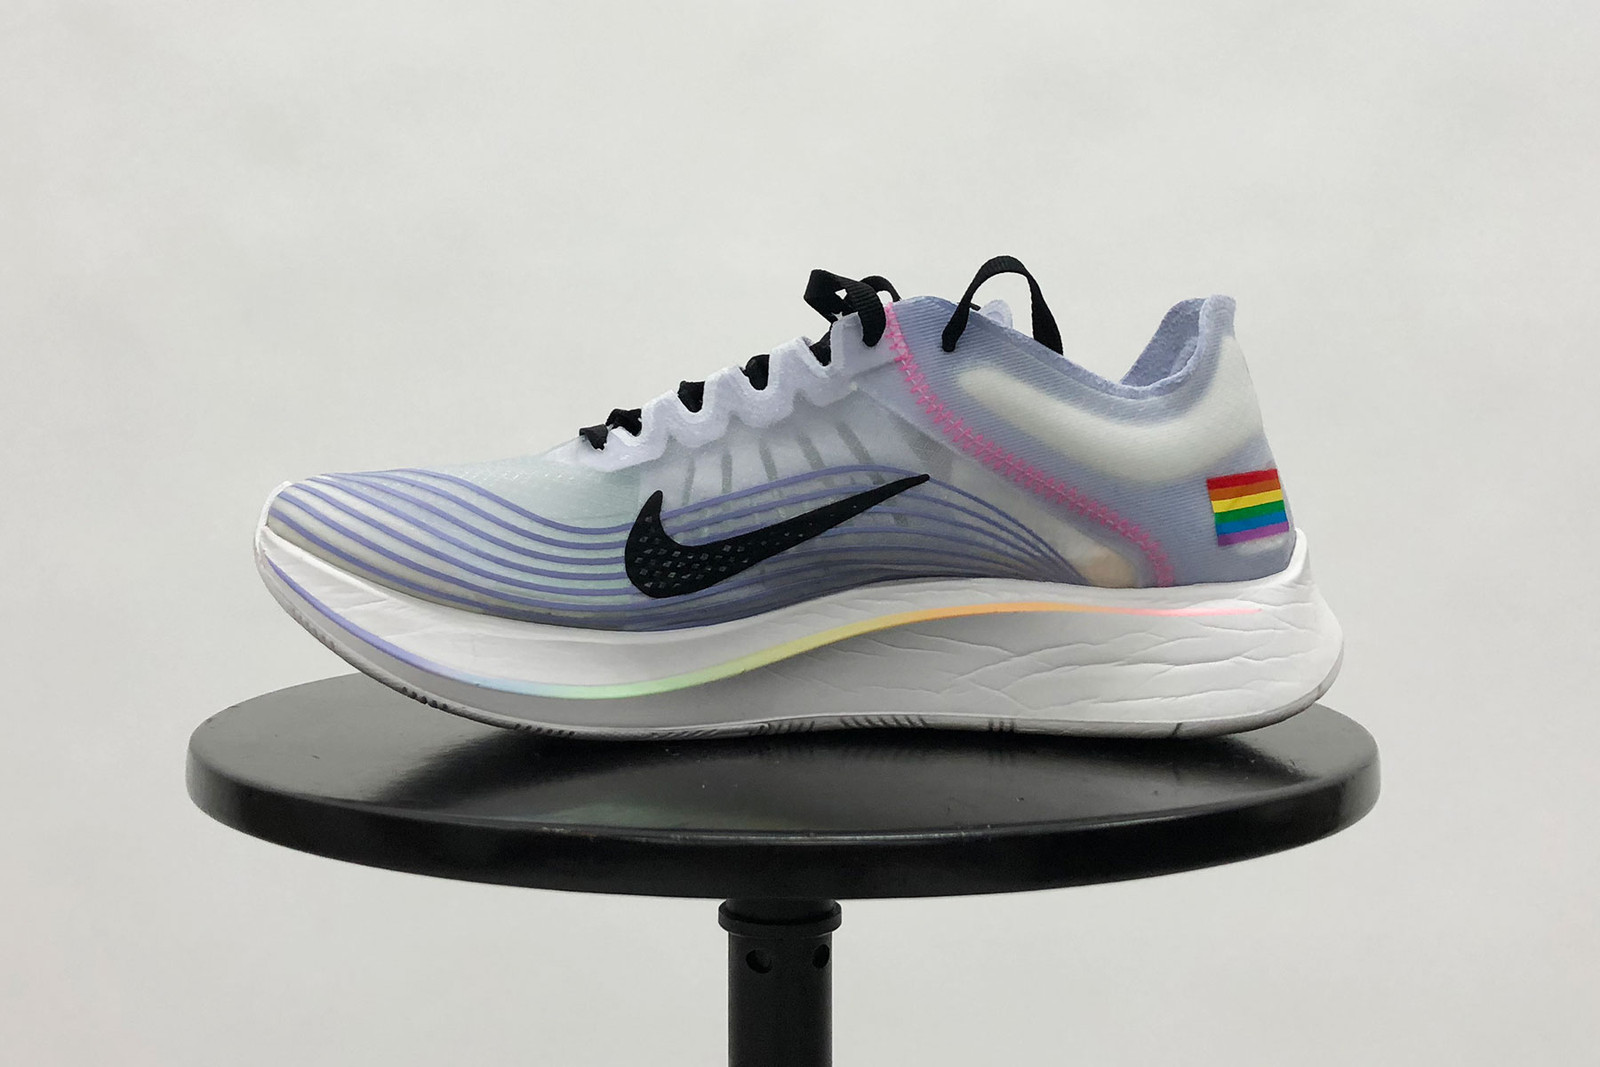 ac53843ff8f3 hypebaekicks review nike zoom fly betrue pride pack rainbow lgbtq